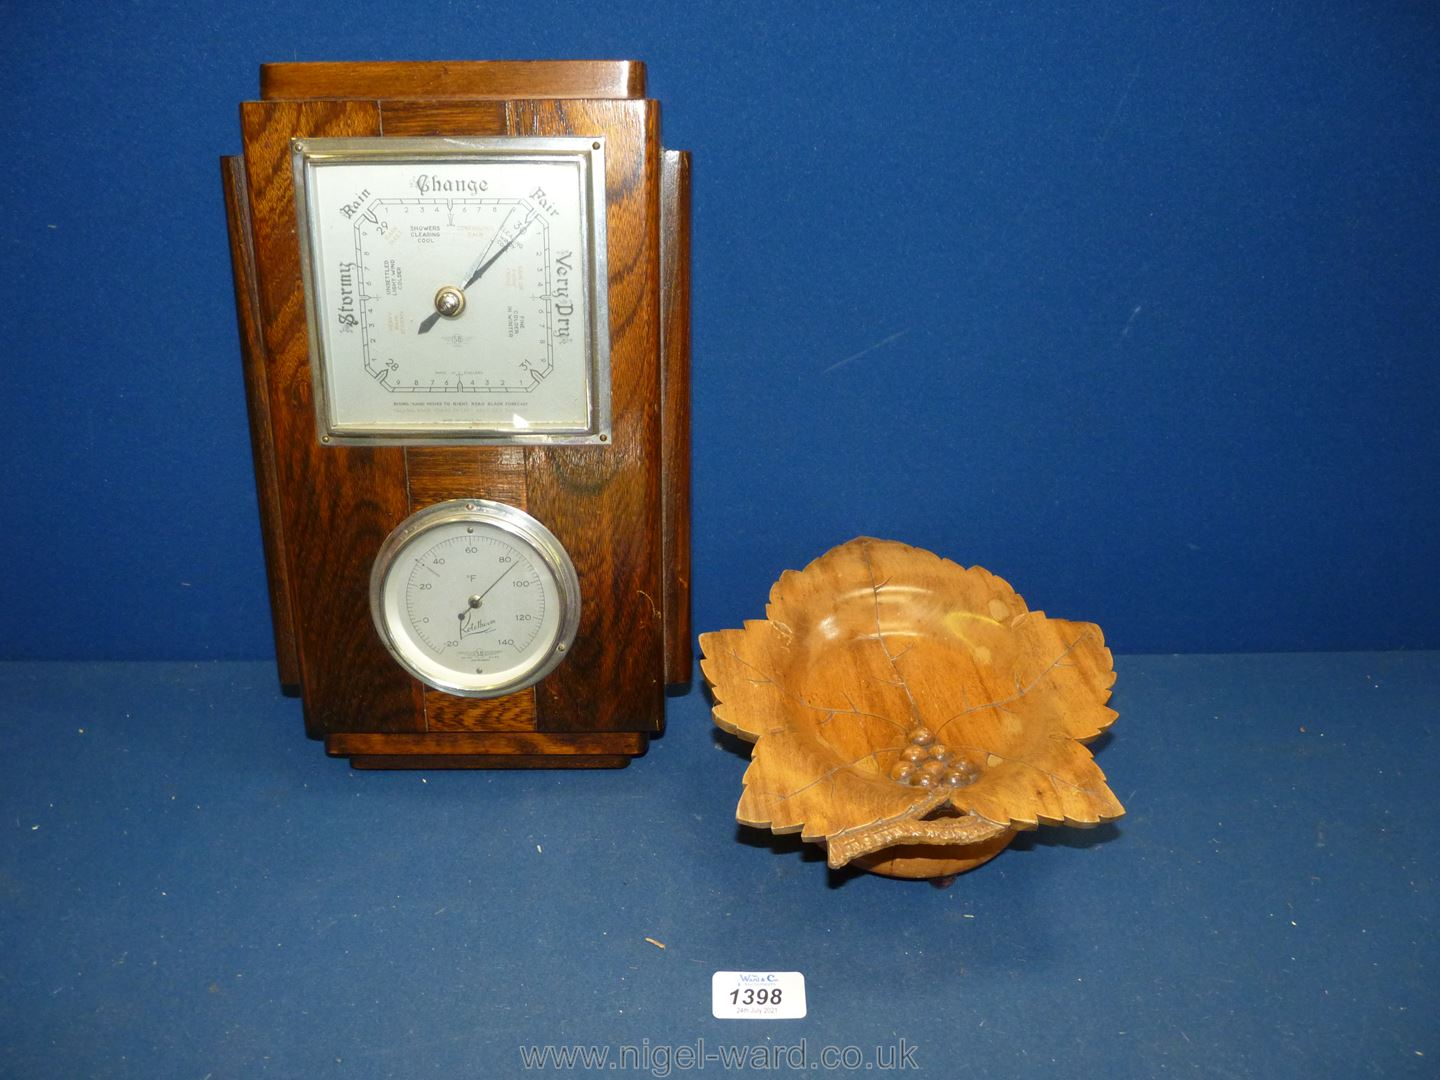 A wooden framed wall barometer/thermometer and a treen musical sweet plate. - Image 2 of 2